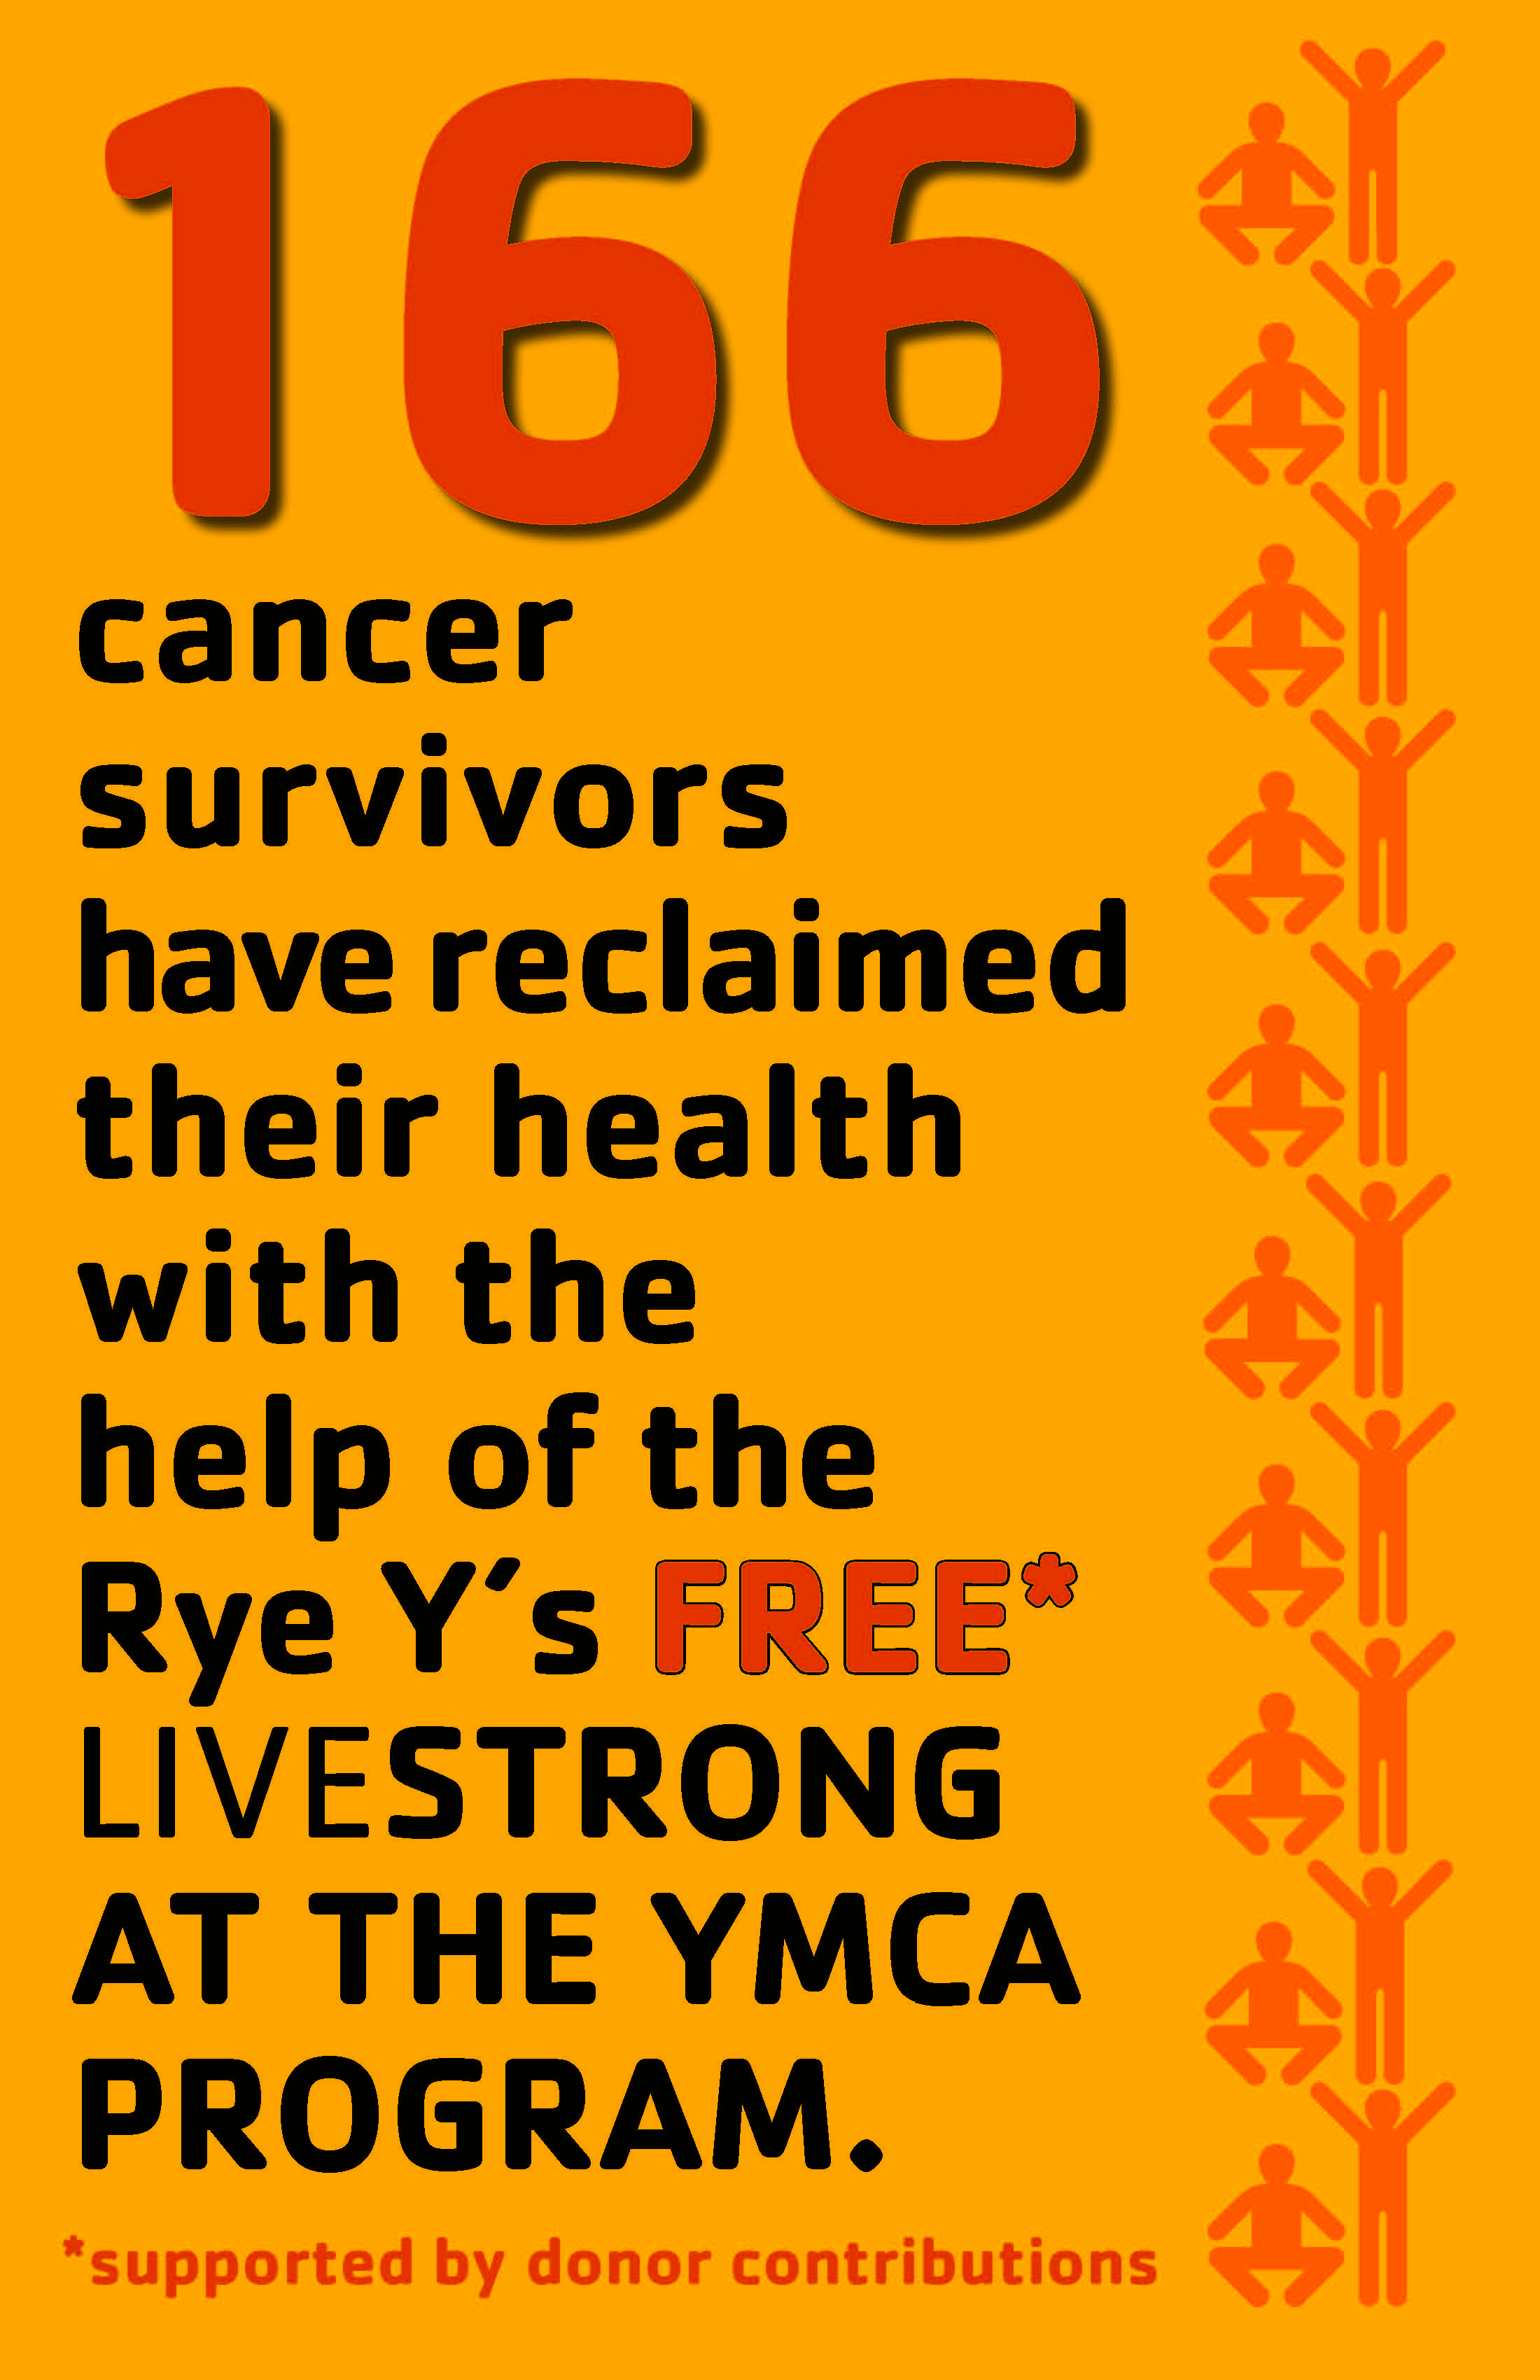 Our livestrong at the ymca program is supported by donor